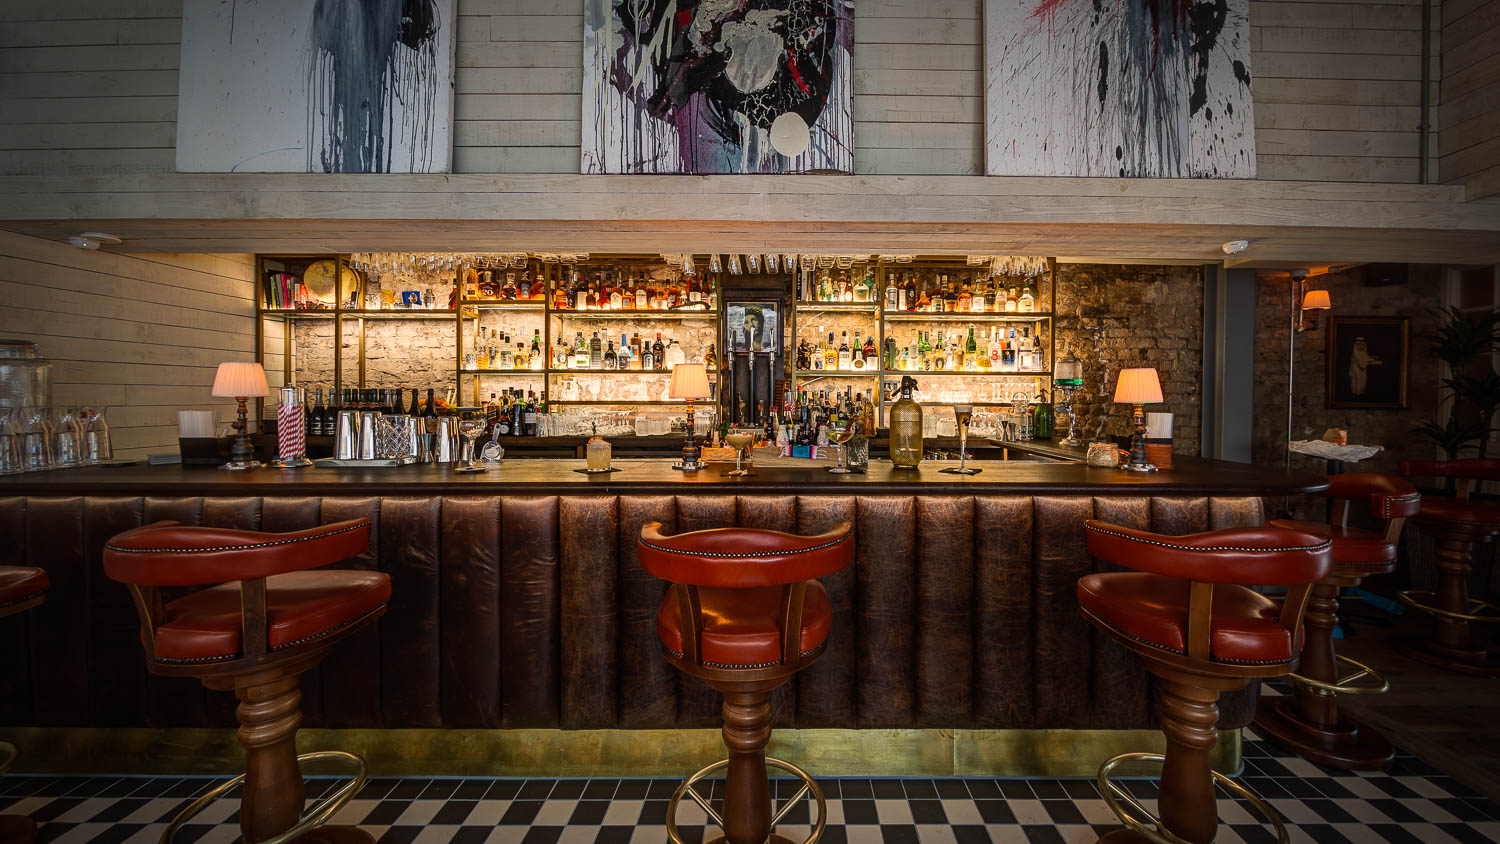 The Black Cat cocktail bar at award-winning restaurant El Gato Negro